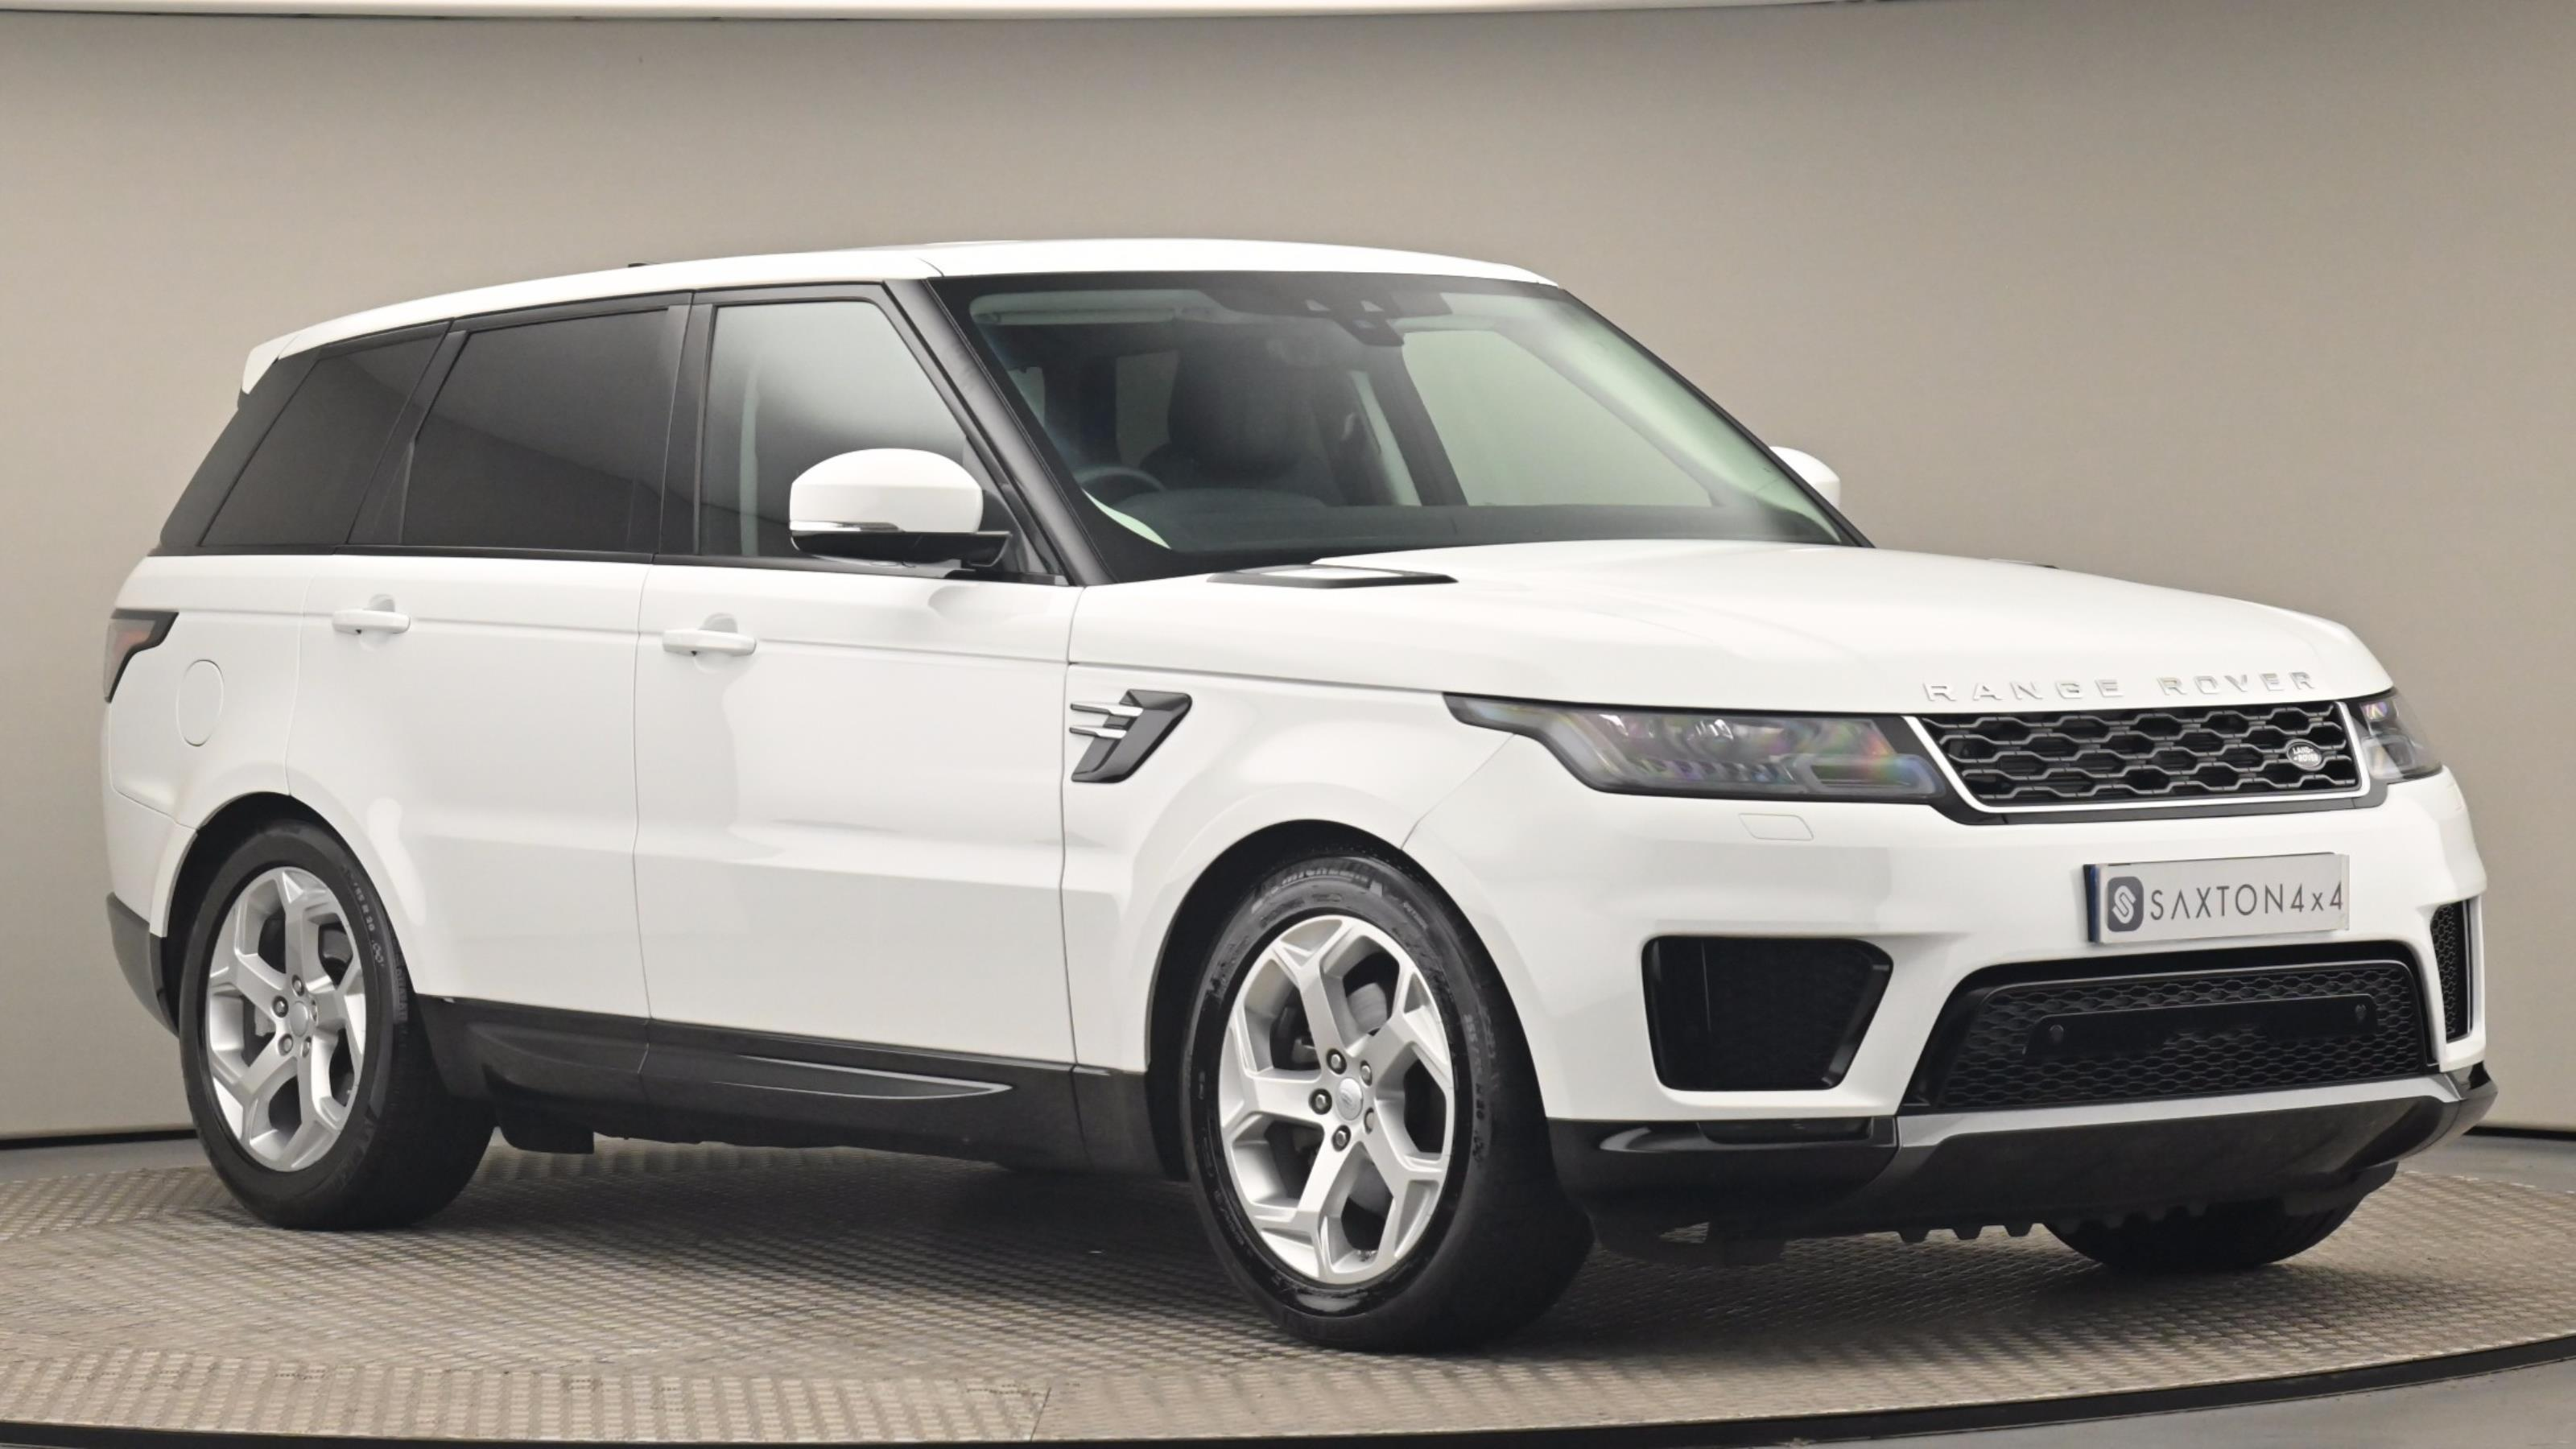 Used 2019 Land Rover RANGE ROVER SPORT 3.0 SDV6 HSE 5dr Auto ~ at Saxton4x4